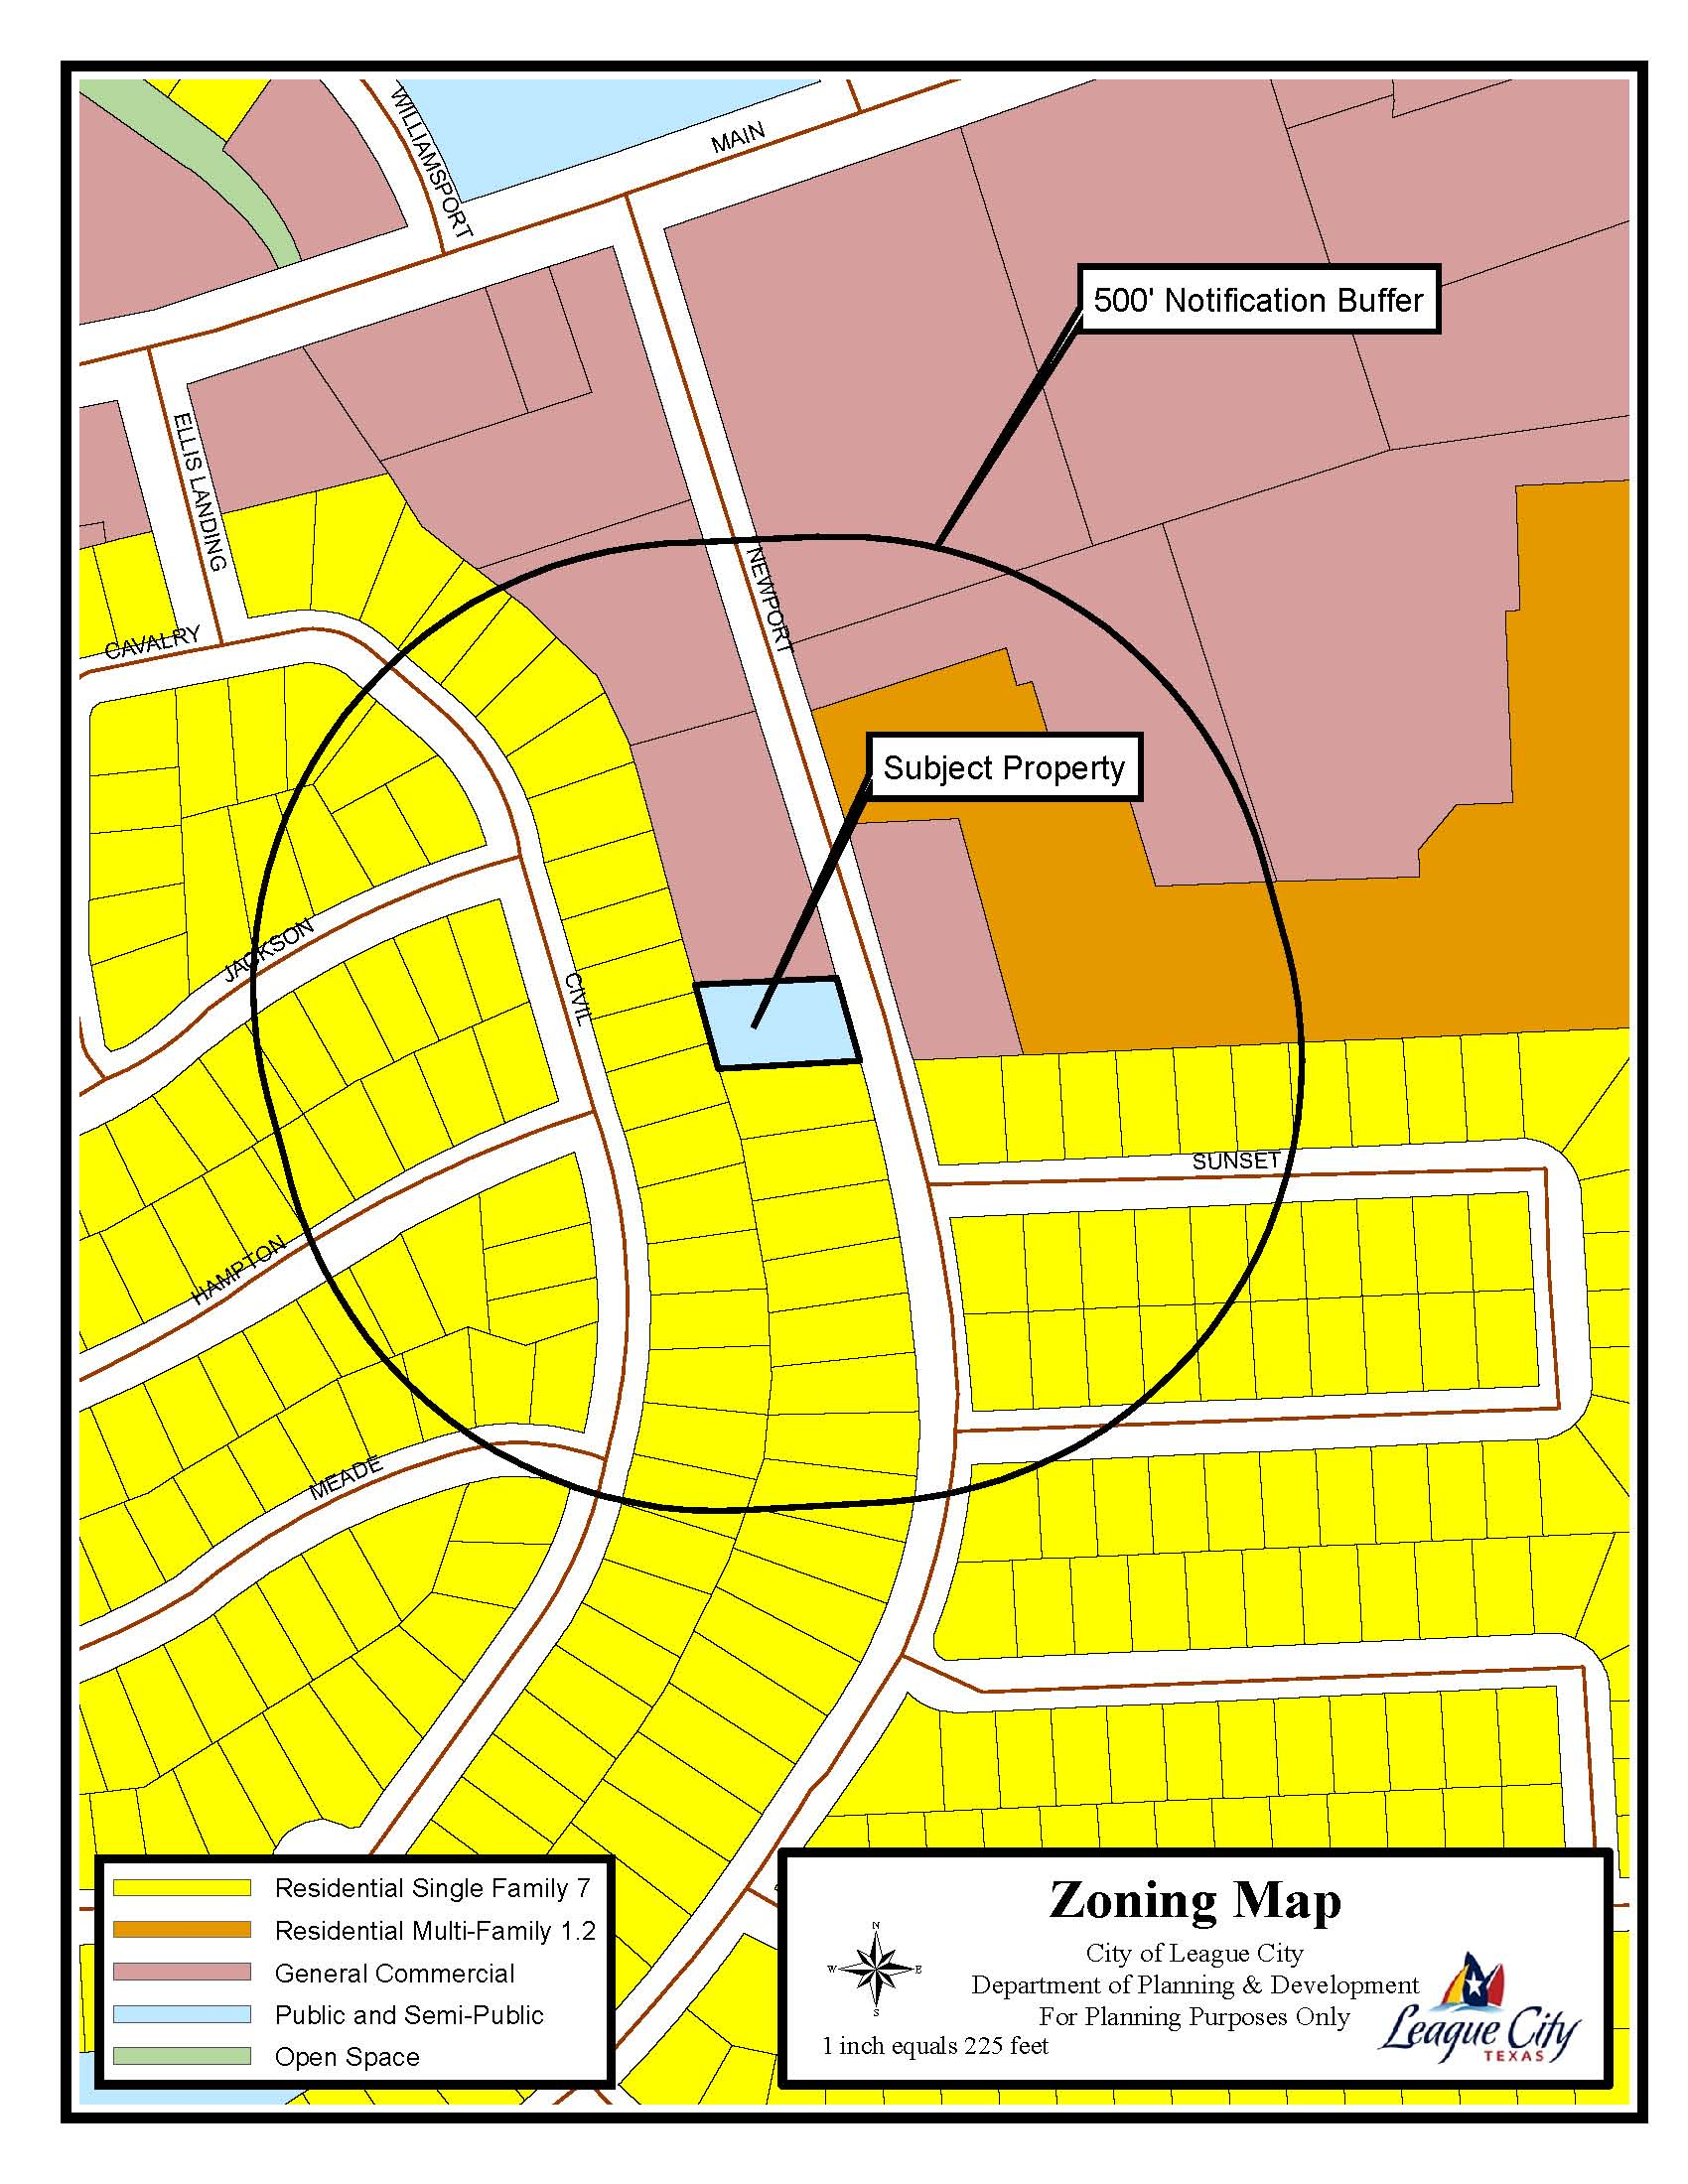 355 Newport Blvd Zoning Map.jpg